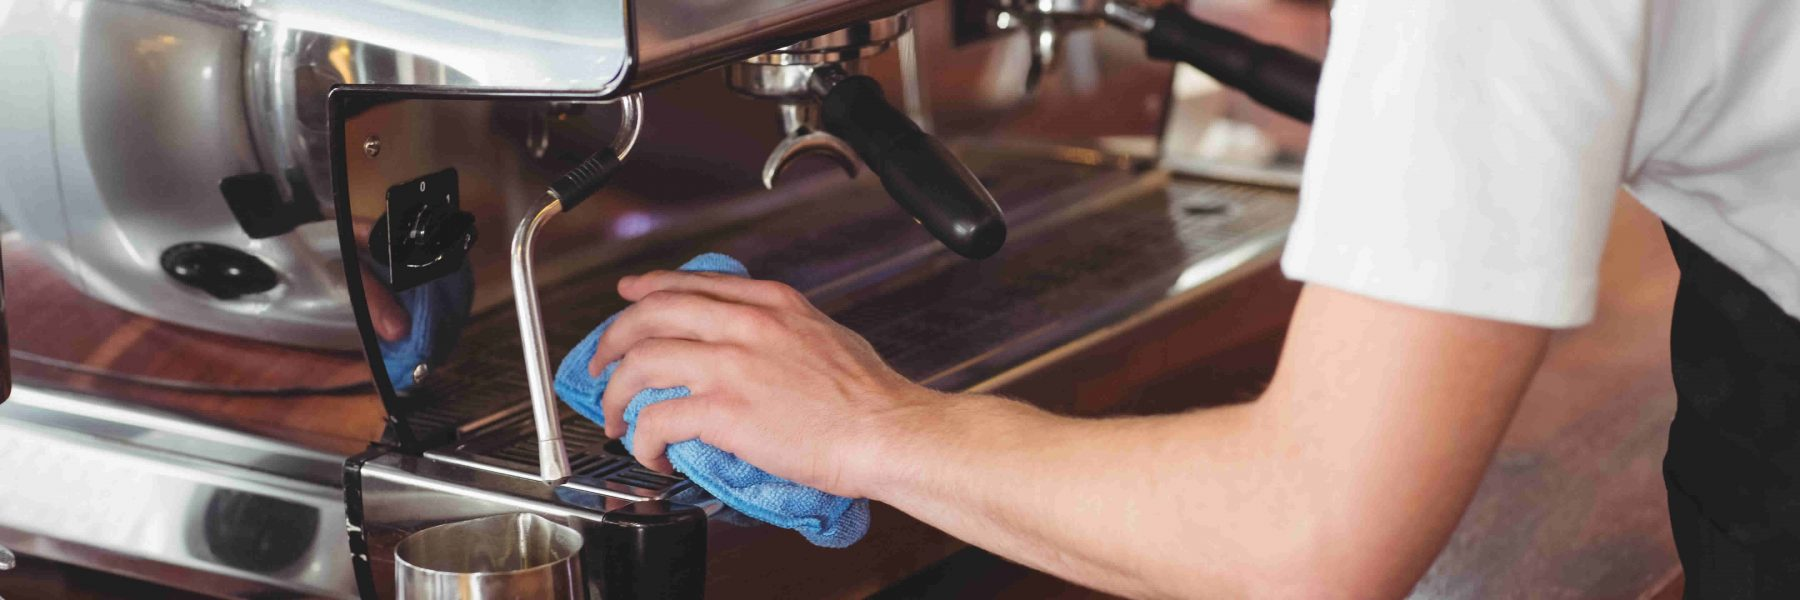 Coffee machine, barista maintenance and support